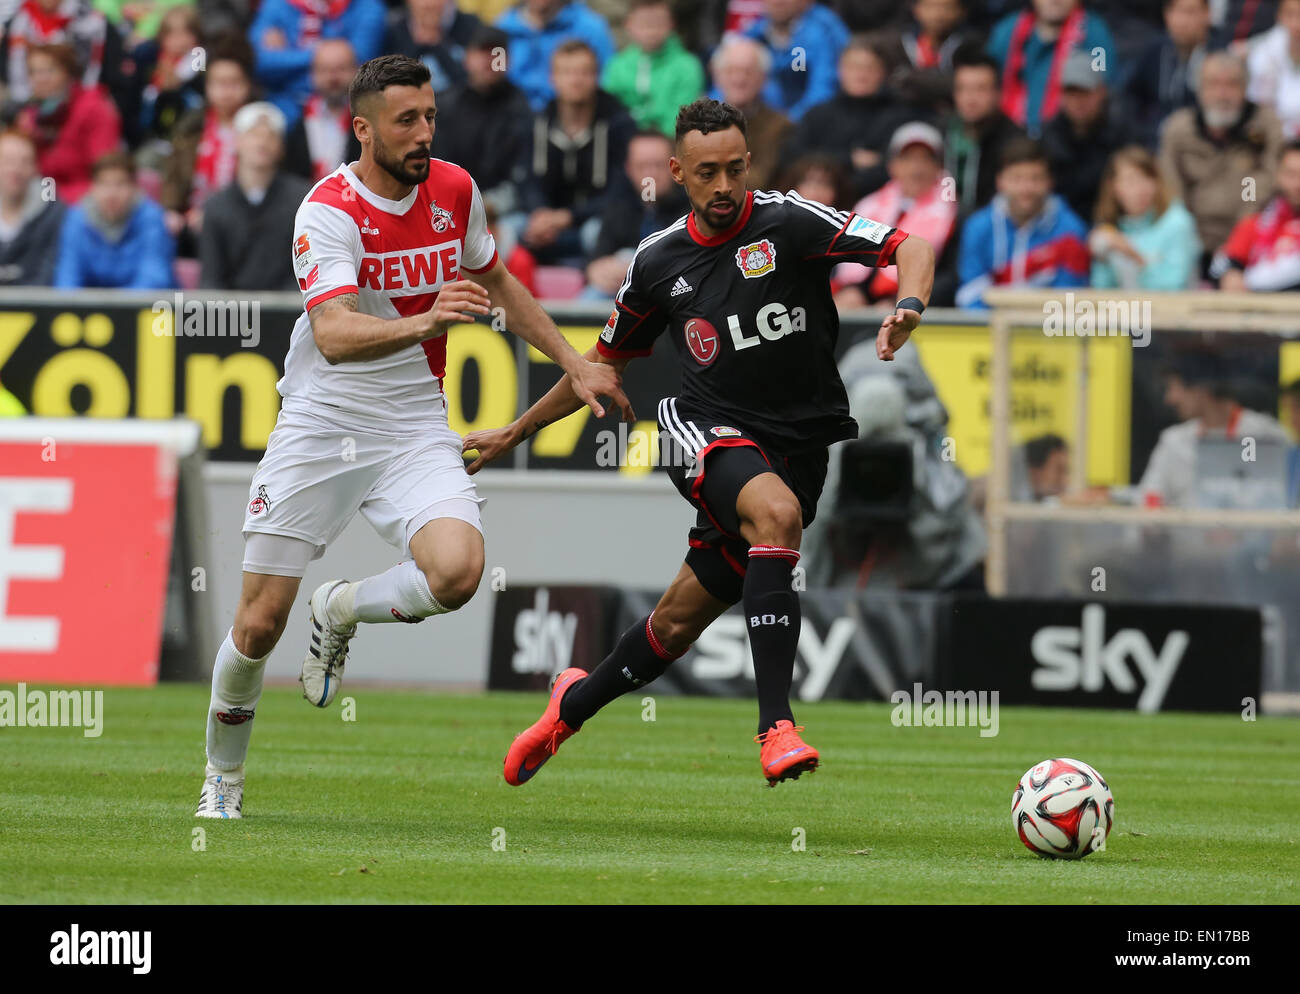 Cologne, Germany, 25Apr 2015. Bundesliga, 1. FC Koeln vs Bayer Leverkusen. Tackling between Karim Bellarabi (Leverkusen, - Stock Image